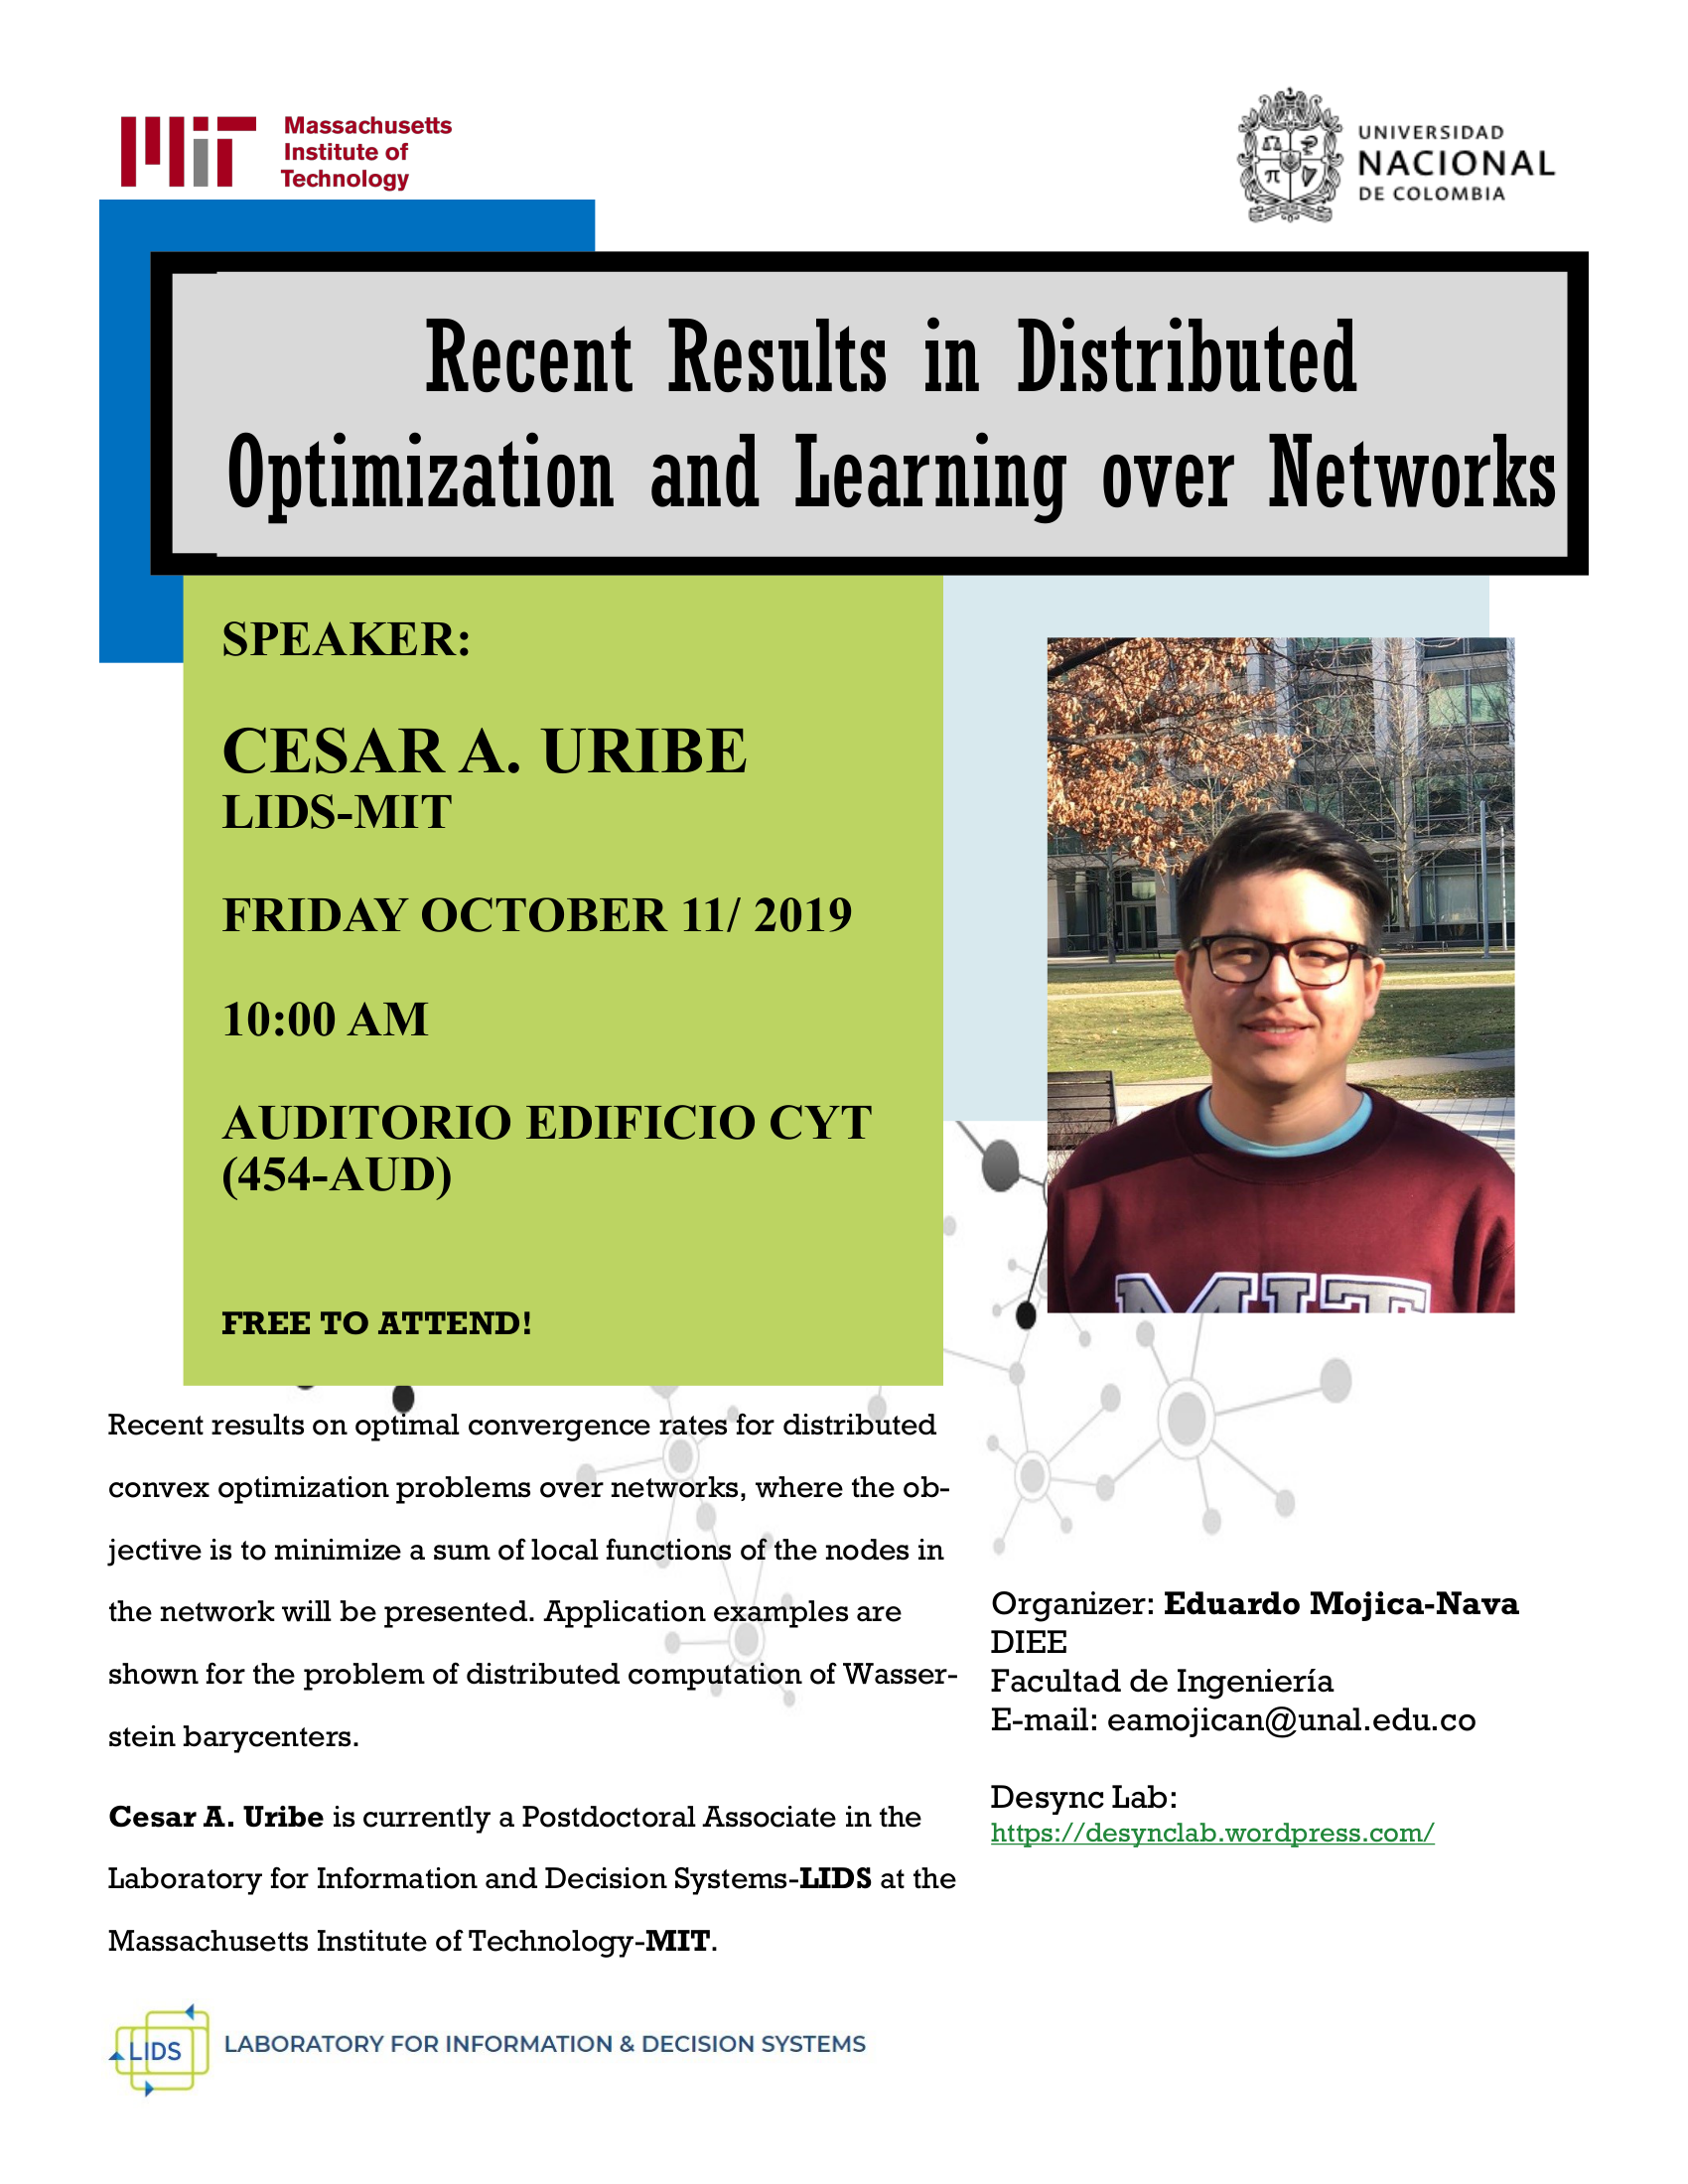 Lecture ?Recent Results in Distributed Optimization and Learning over Networks? (César A. Uribe)